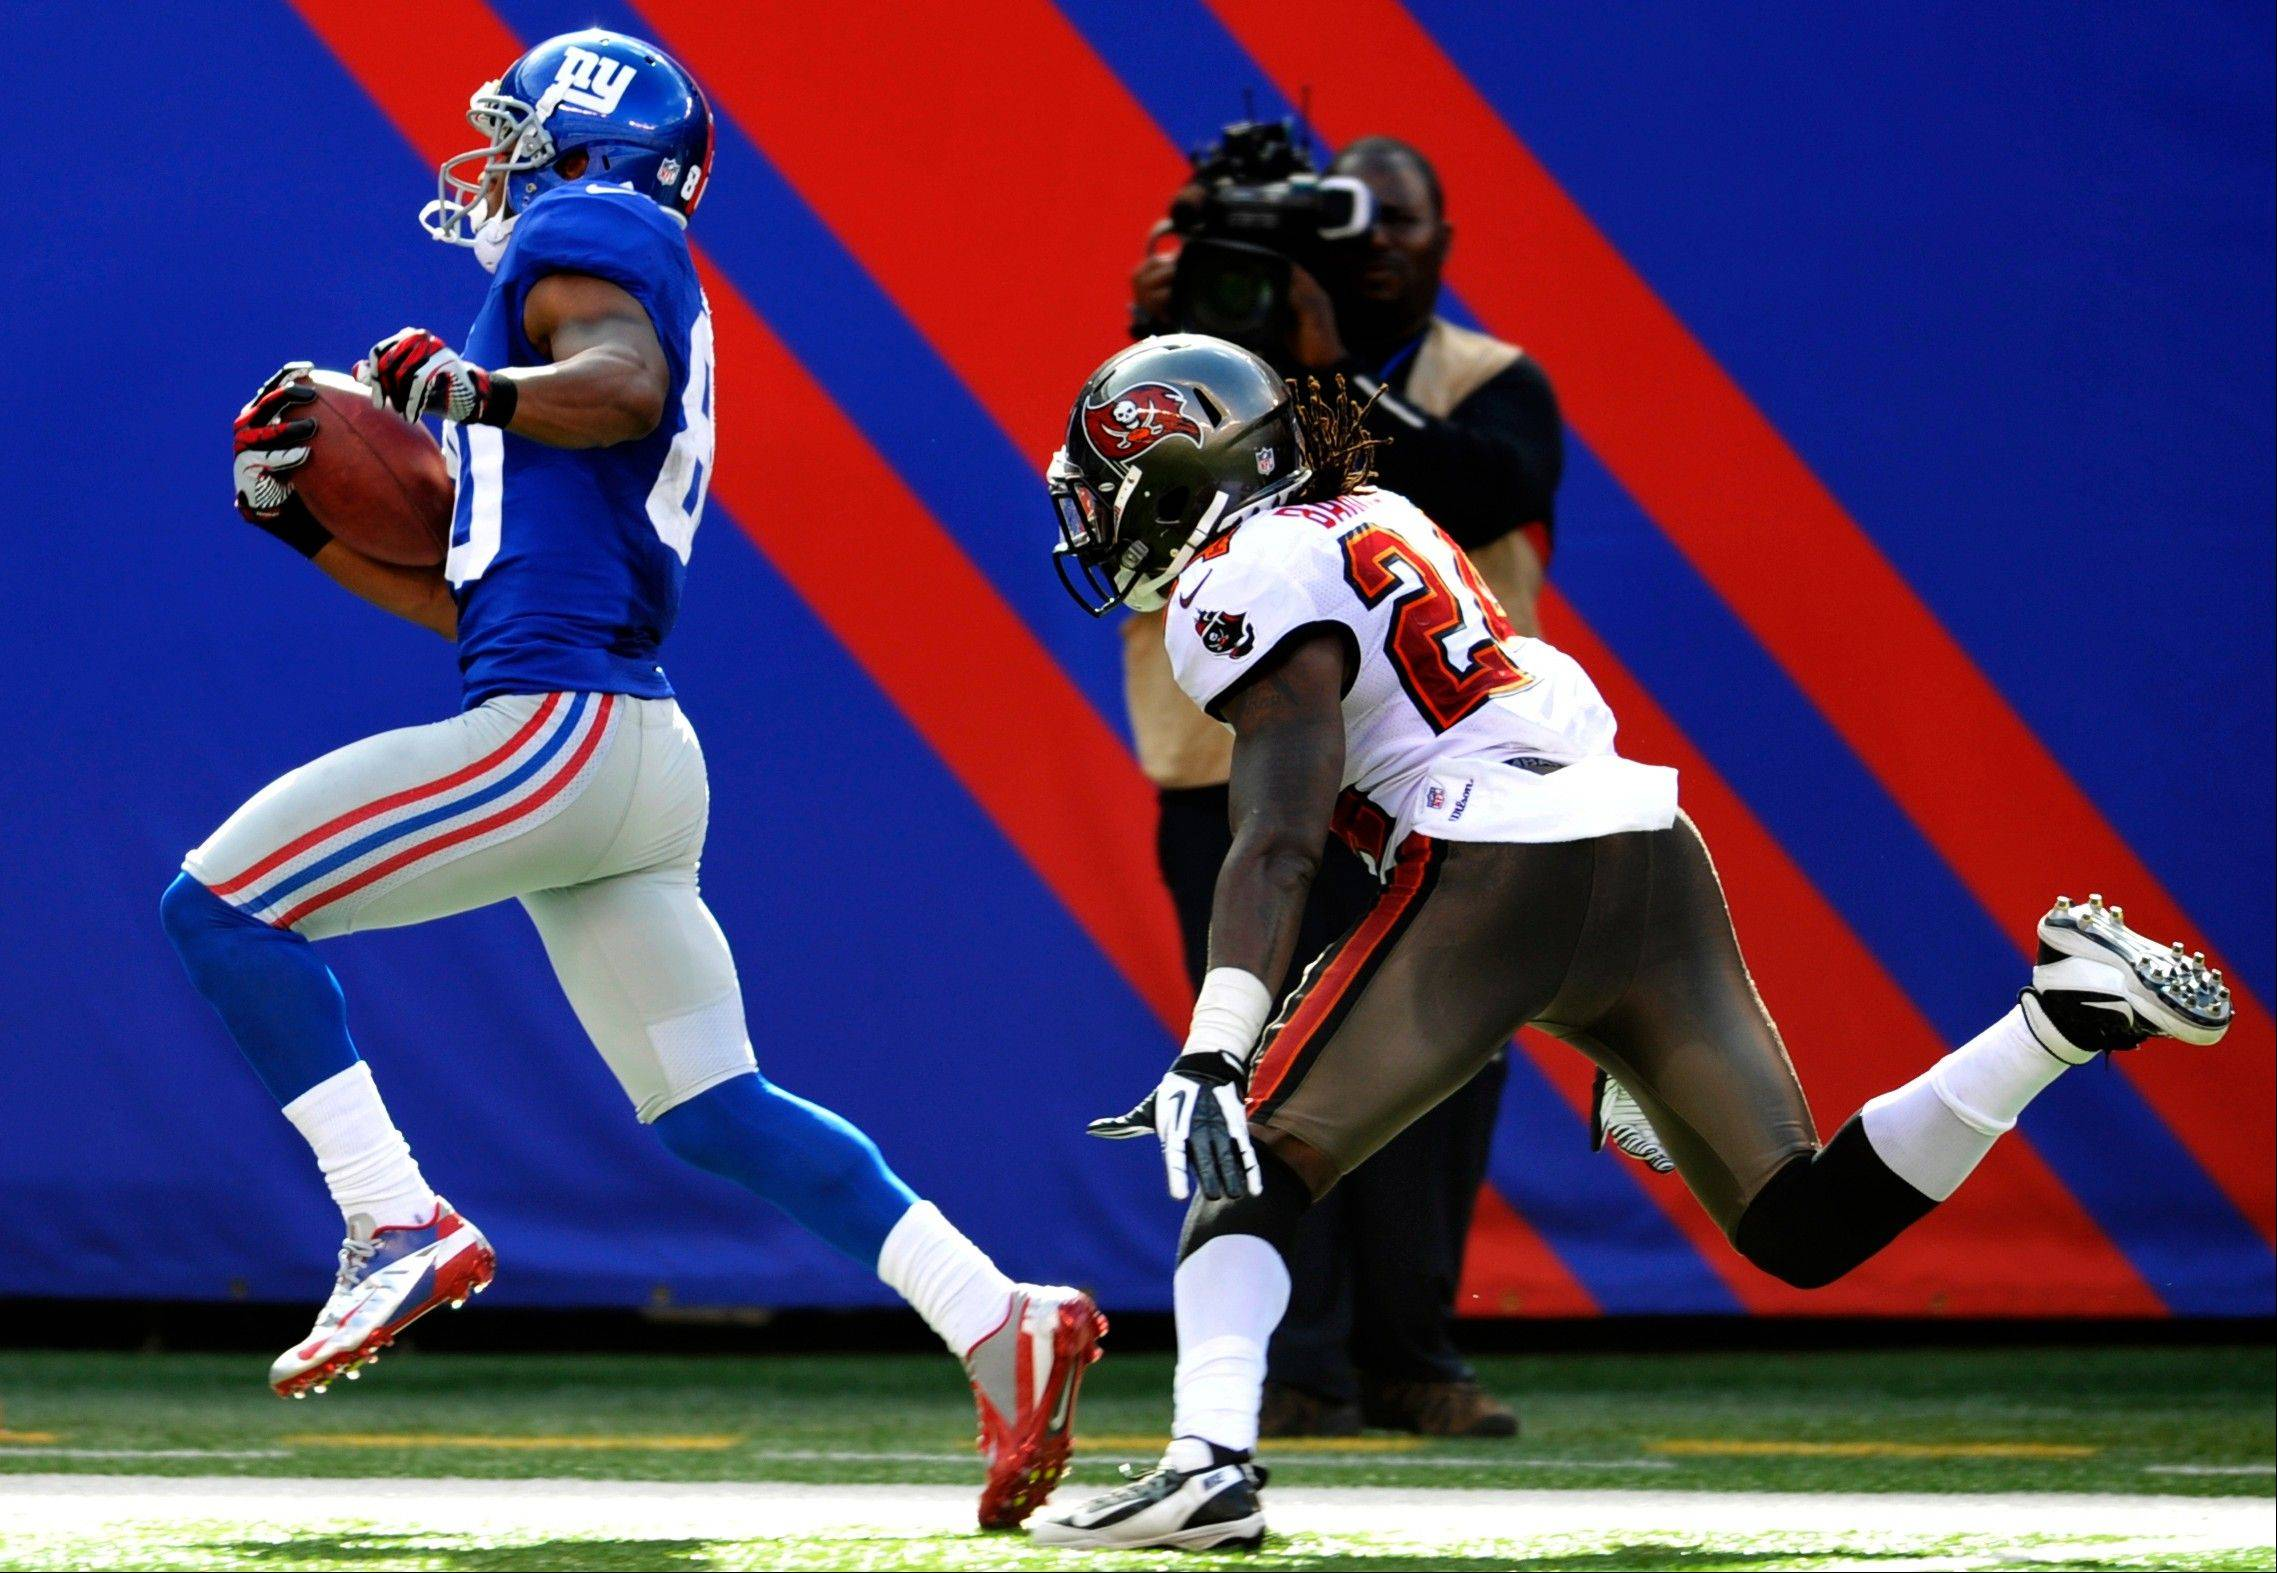 New York Giants' Hakeem Nicks (88) runs away from Tampa Bay Buccaneers' Mark Barron (24) for a touchdown during the second half in East Rutherford, N.J.